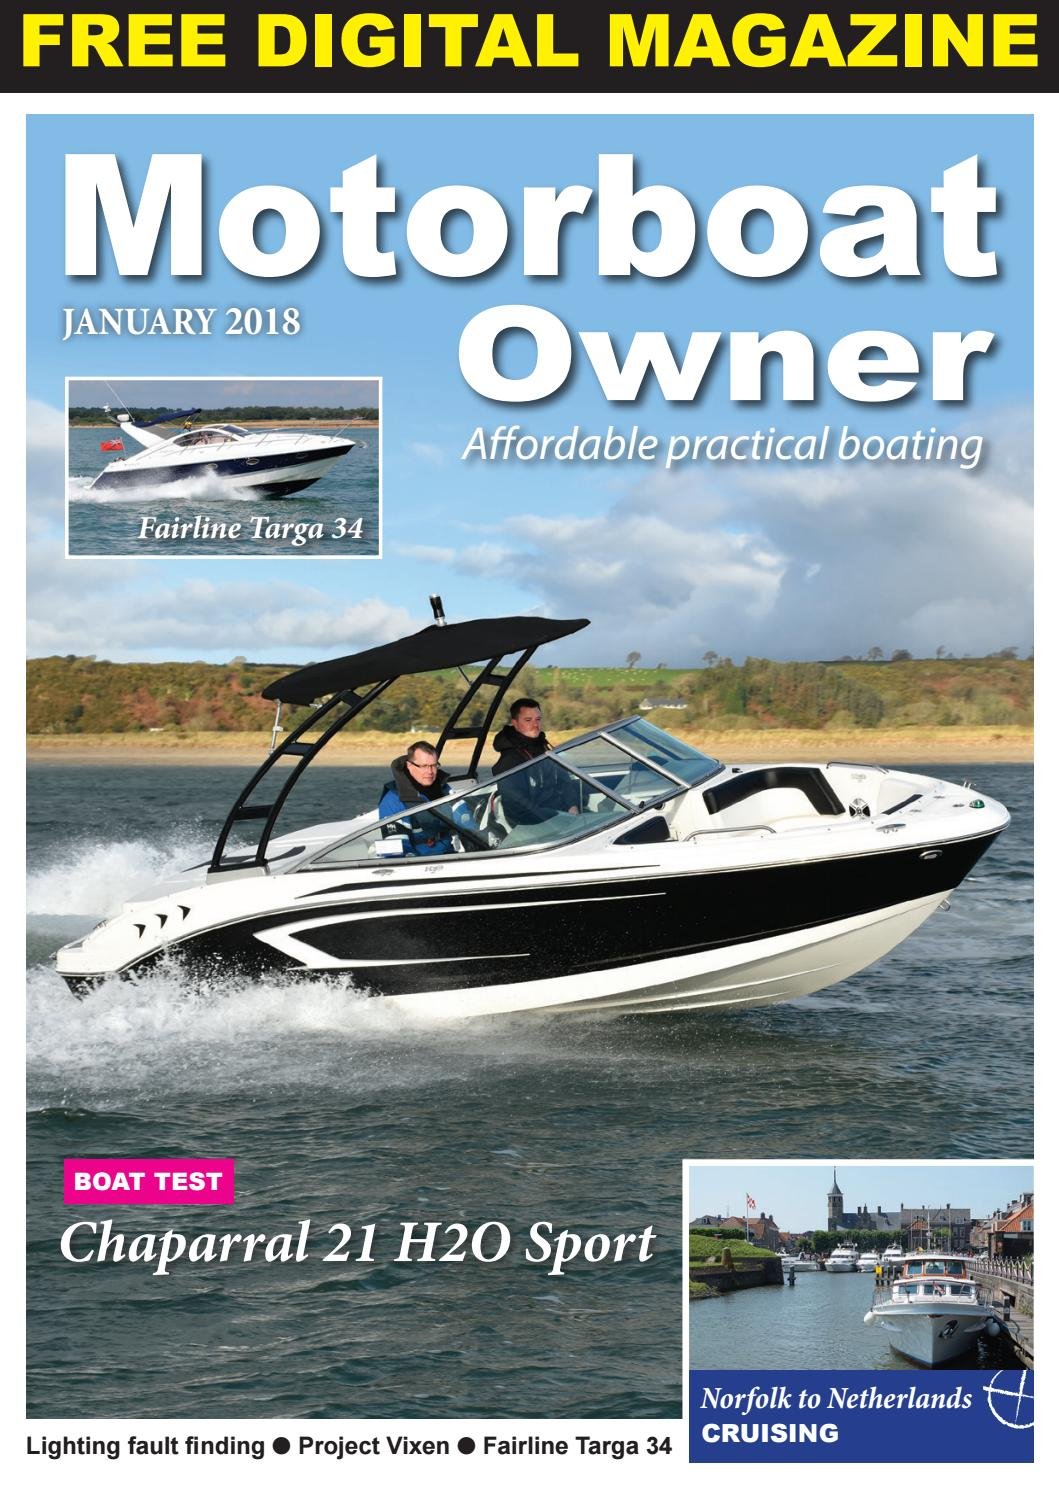 Motorboat Owner January 2018 by Digital Marine Media Ltd - issuu